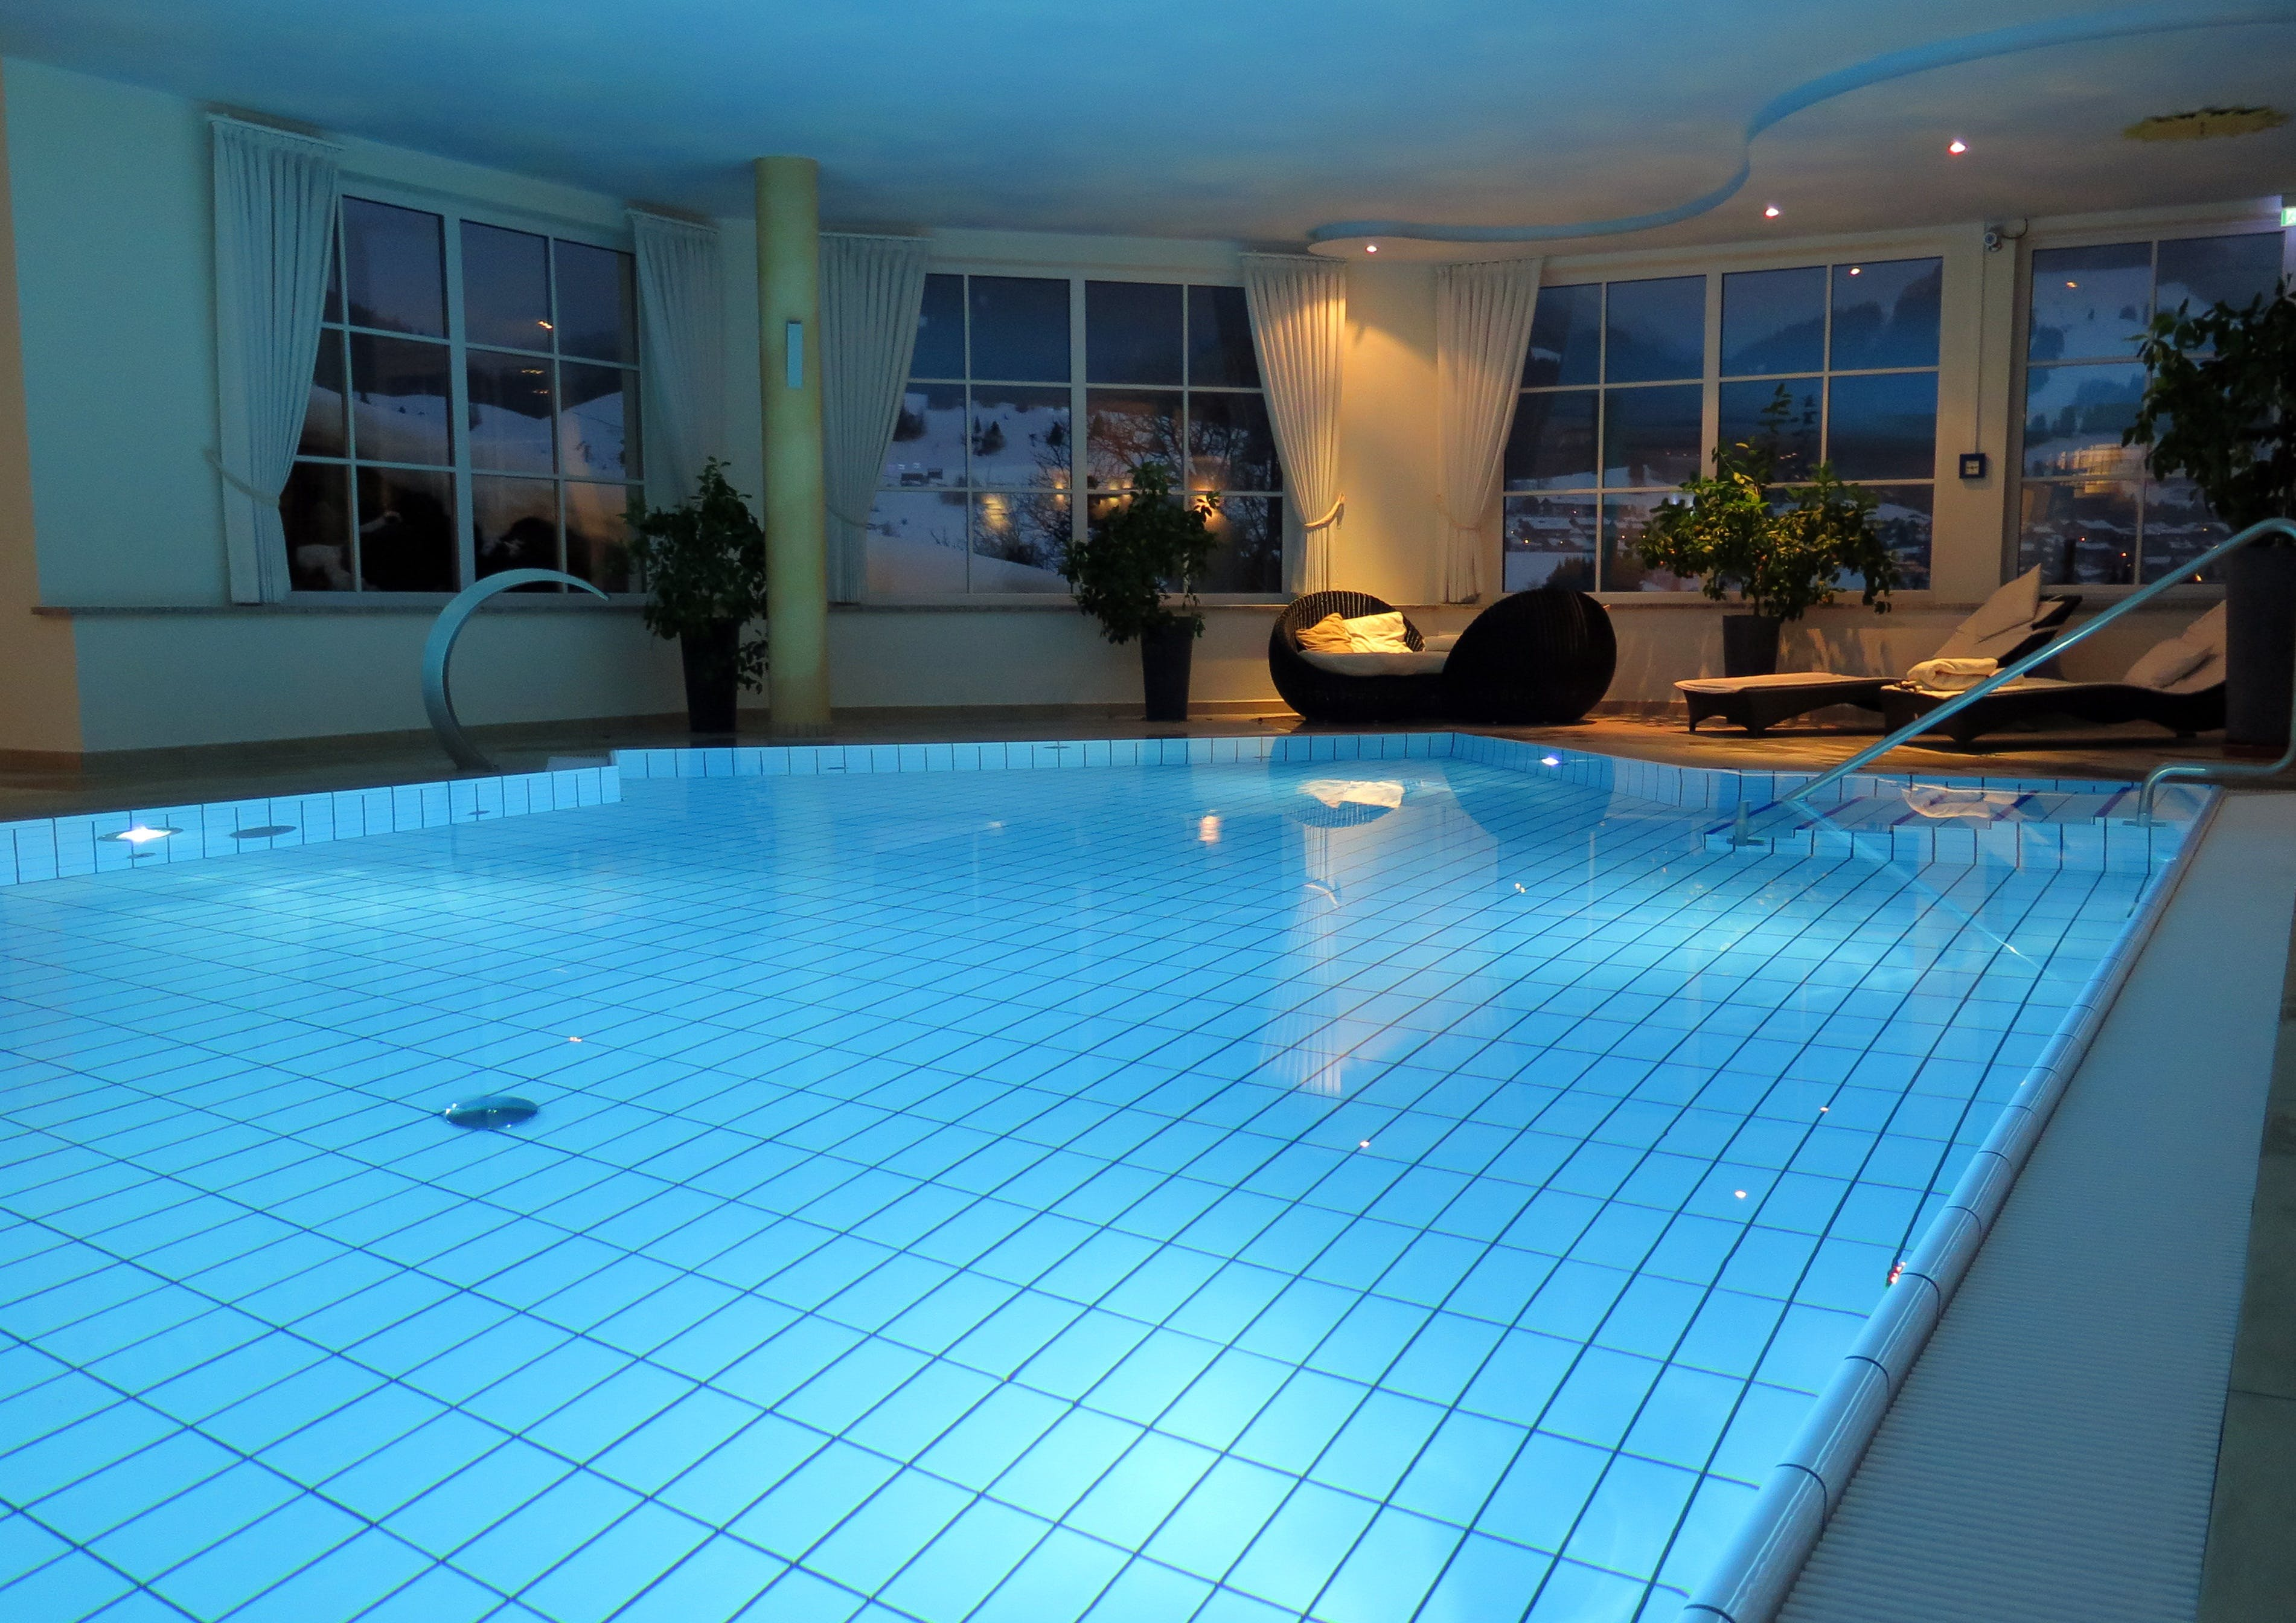 Free stock photo of water, architecture, windows, swimming pool